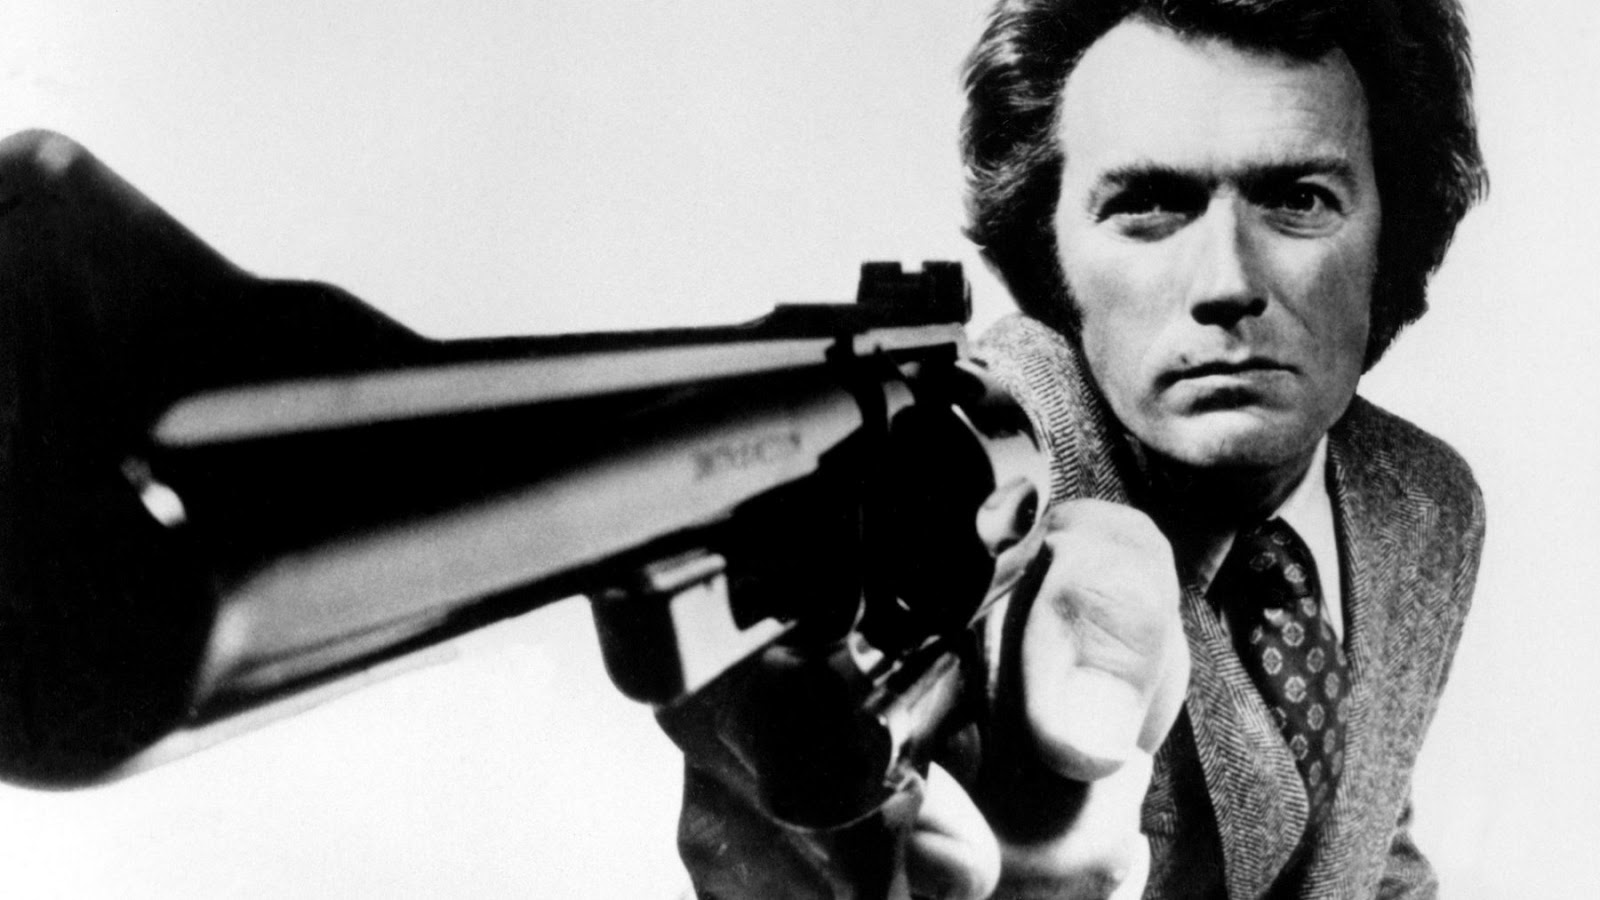 EP128 - Dirty Harry (1971)